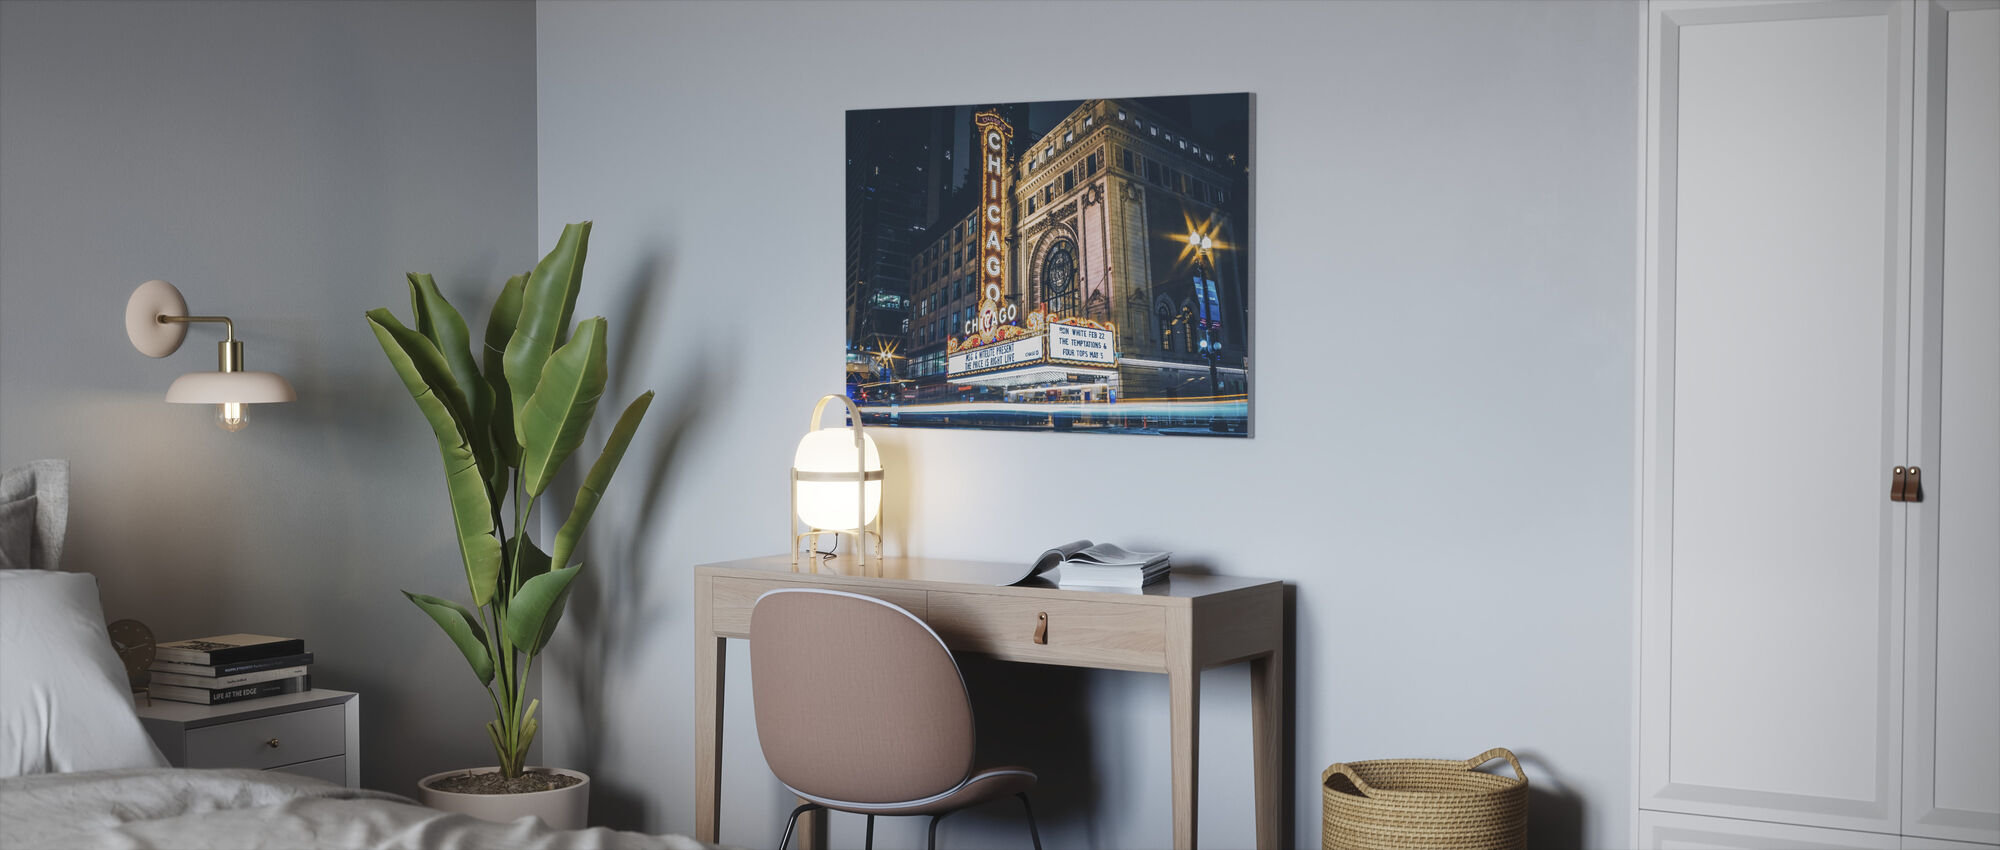 Chicago Theatre - Canvas print - Office